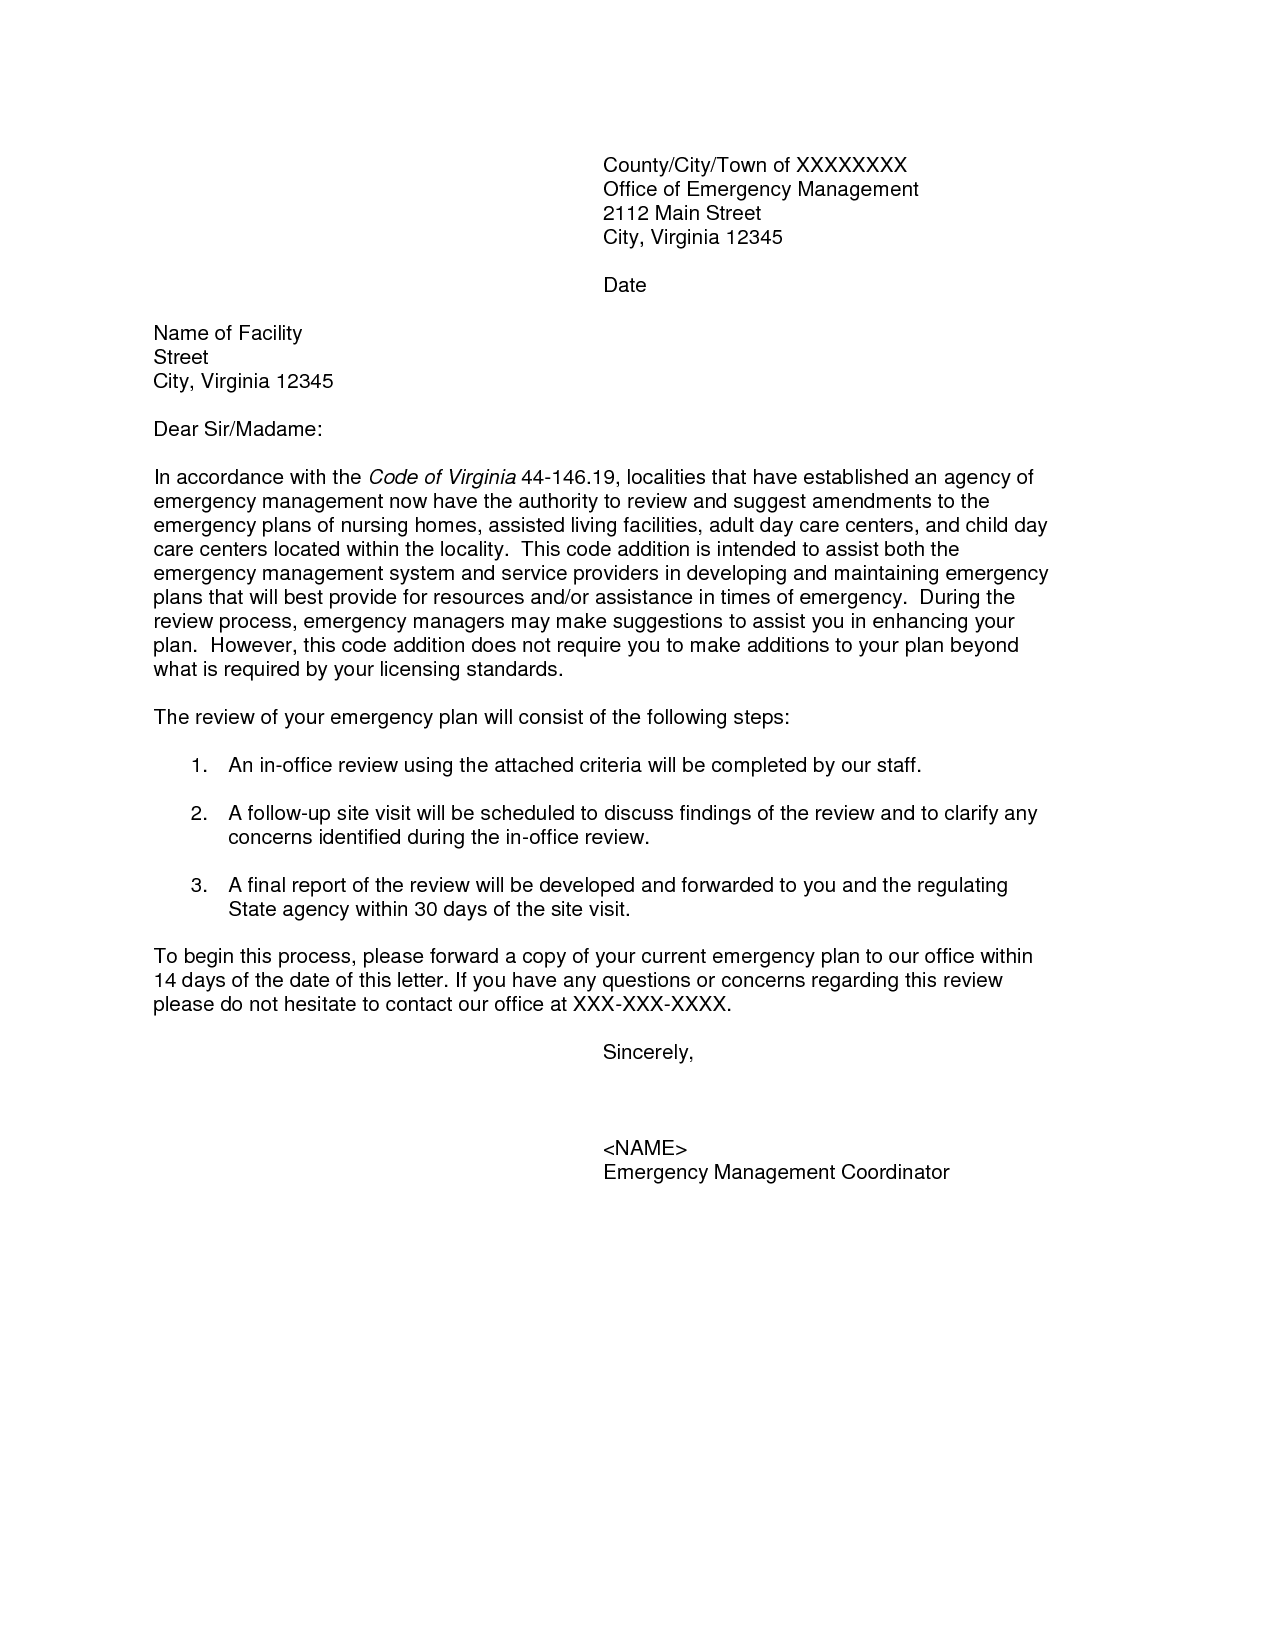 Sample Business Letter Excel Examples of Reference Letters Request ...